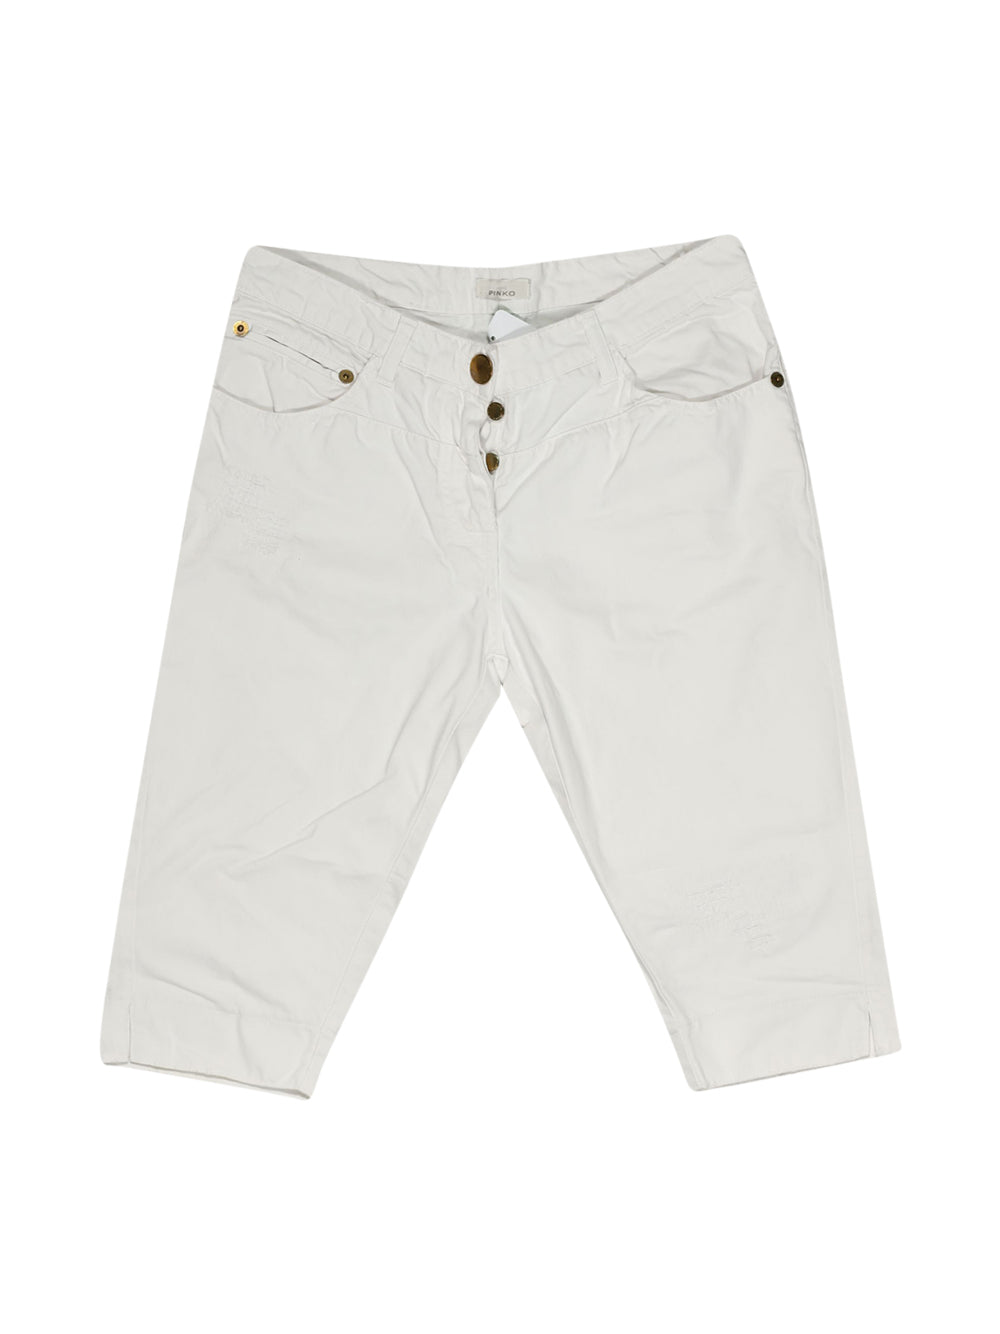 Front photo of Preloved Pinko White Woman's shorts - size 12/L